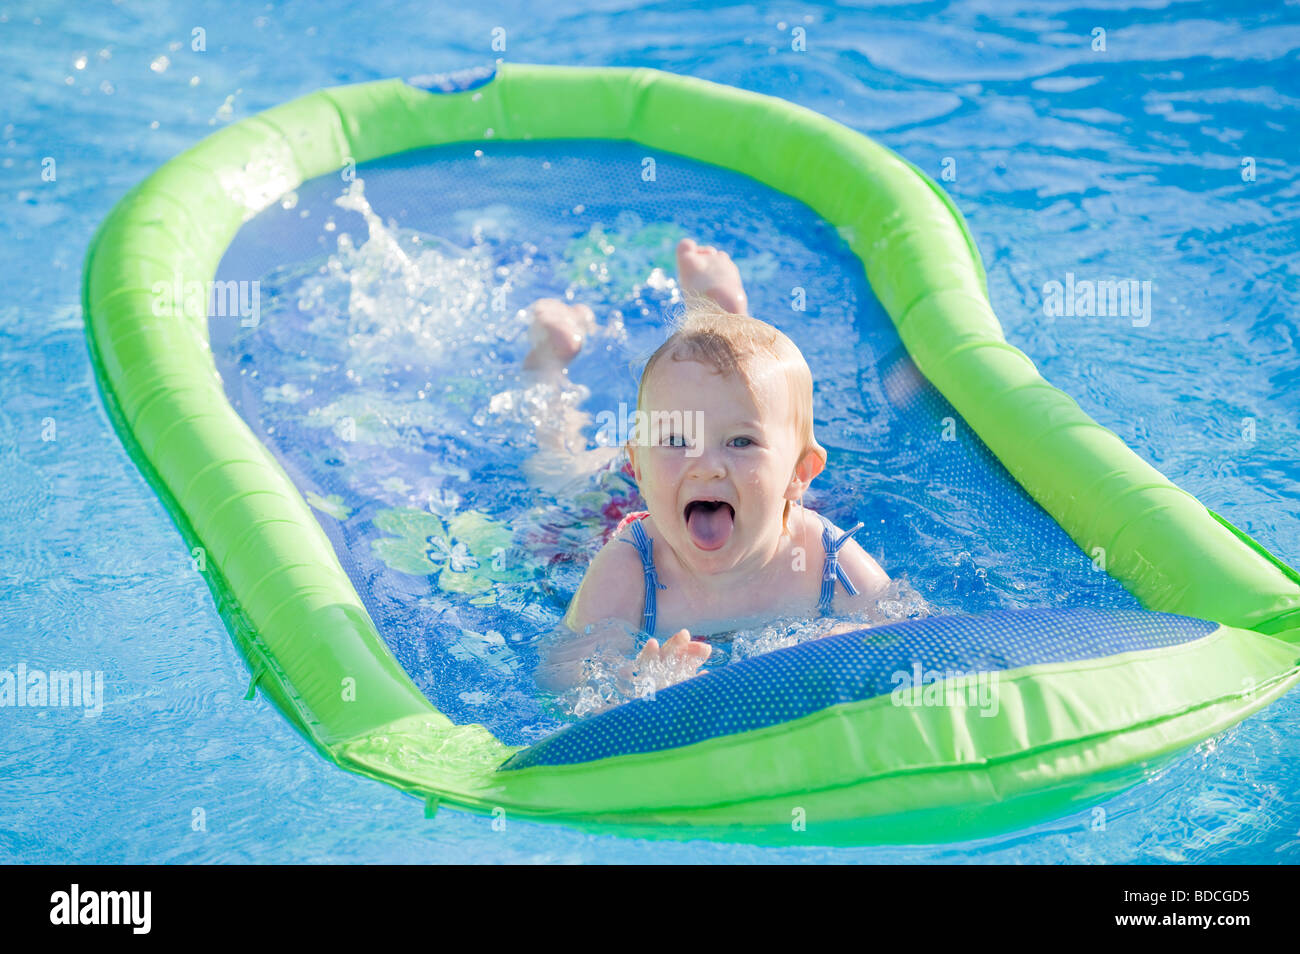 baby girl enjoying swimming in an outdoor pool with the aid of a partial BDCGD5